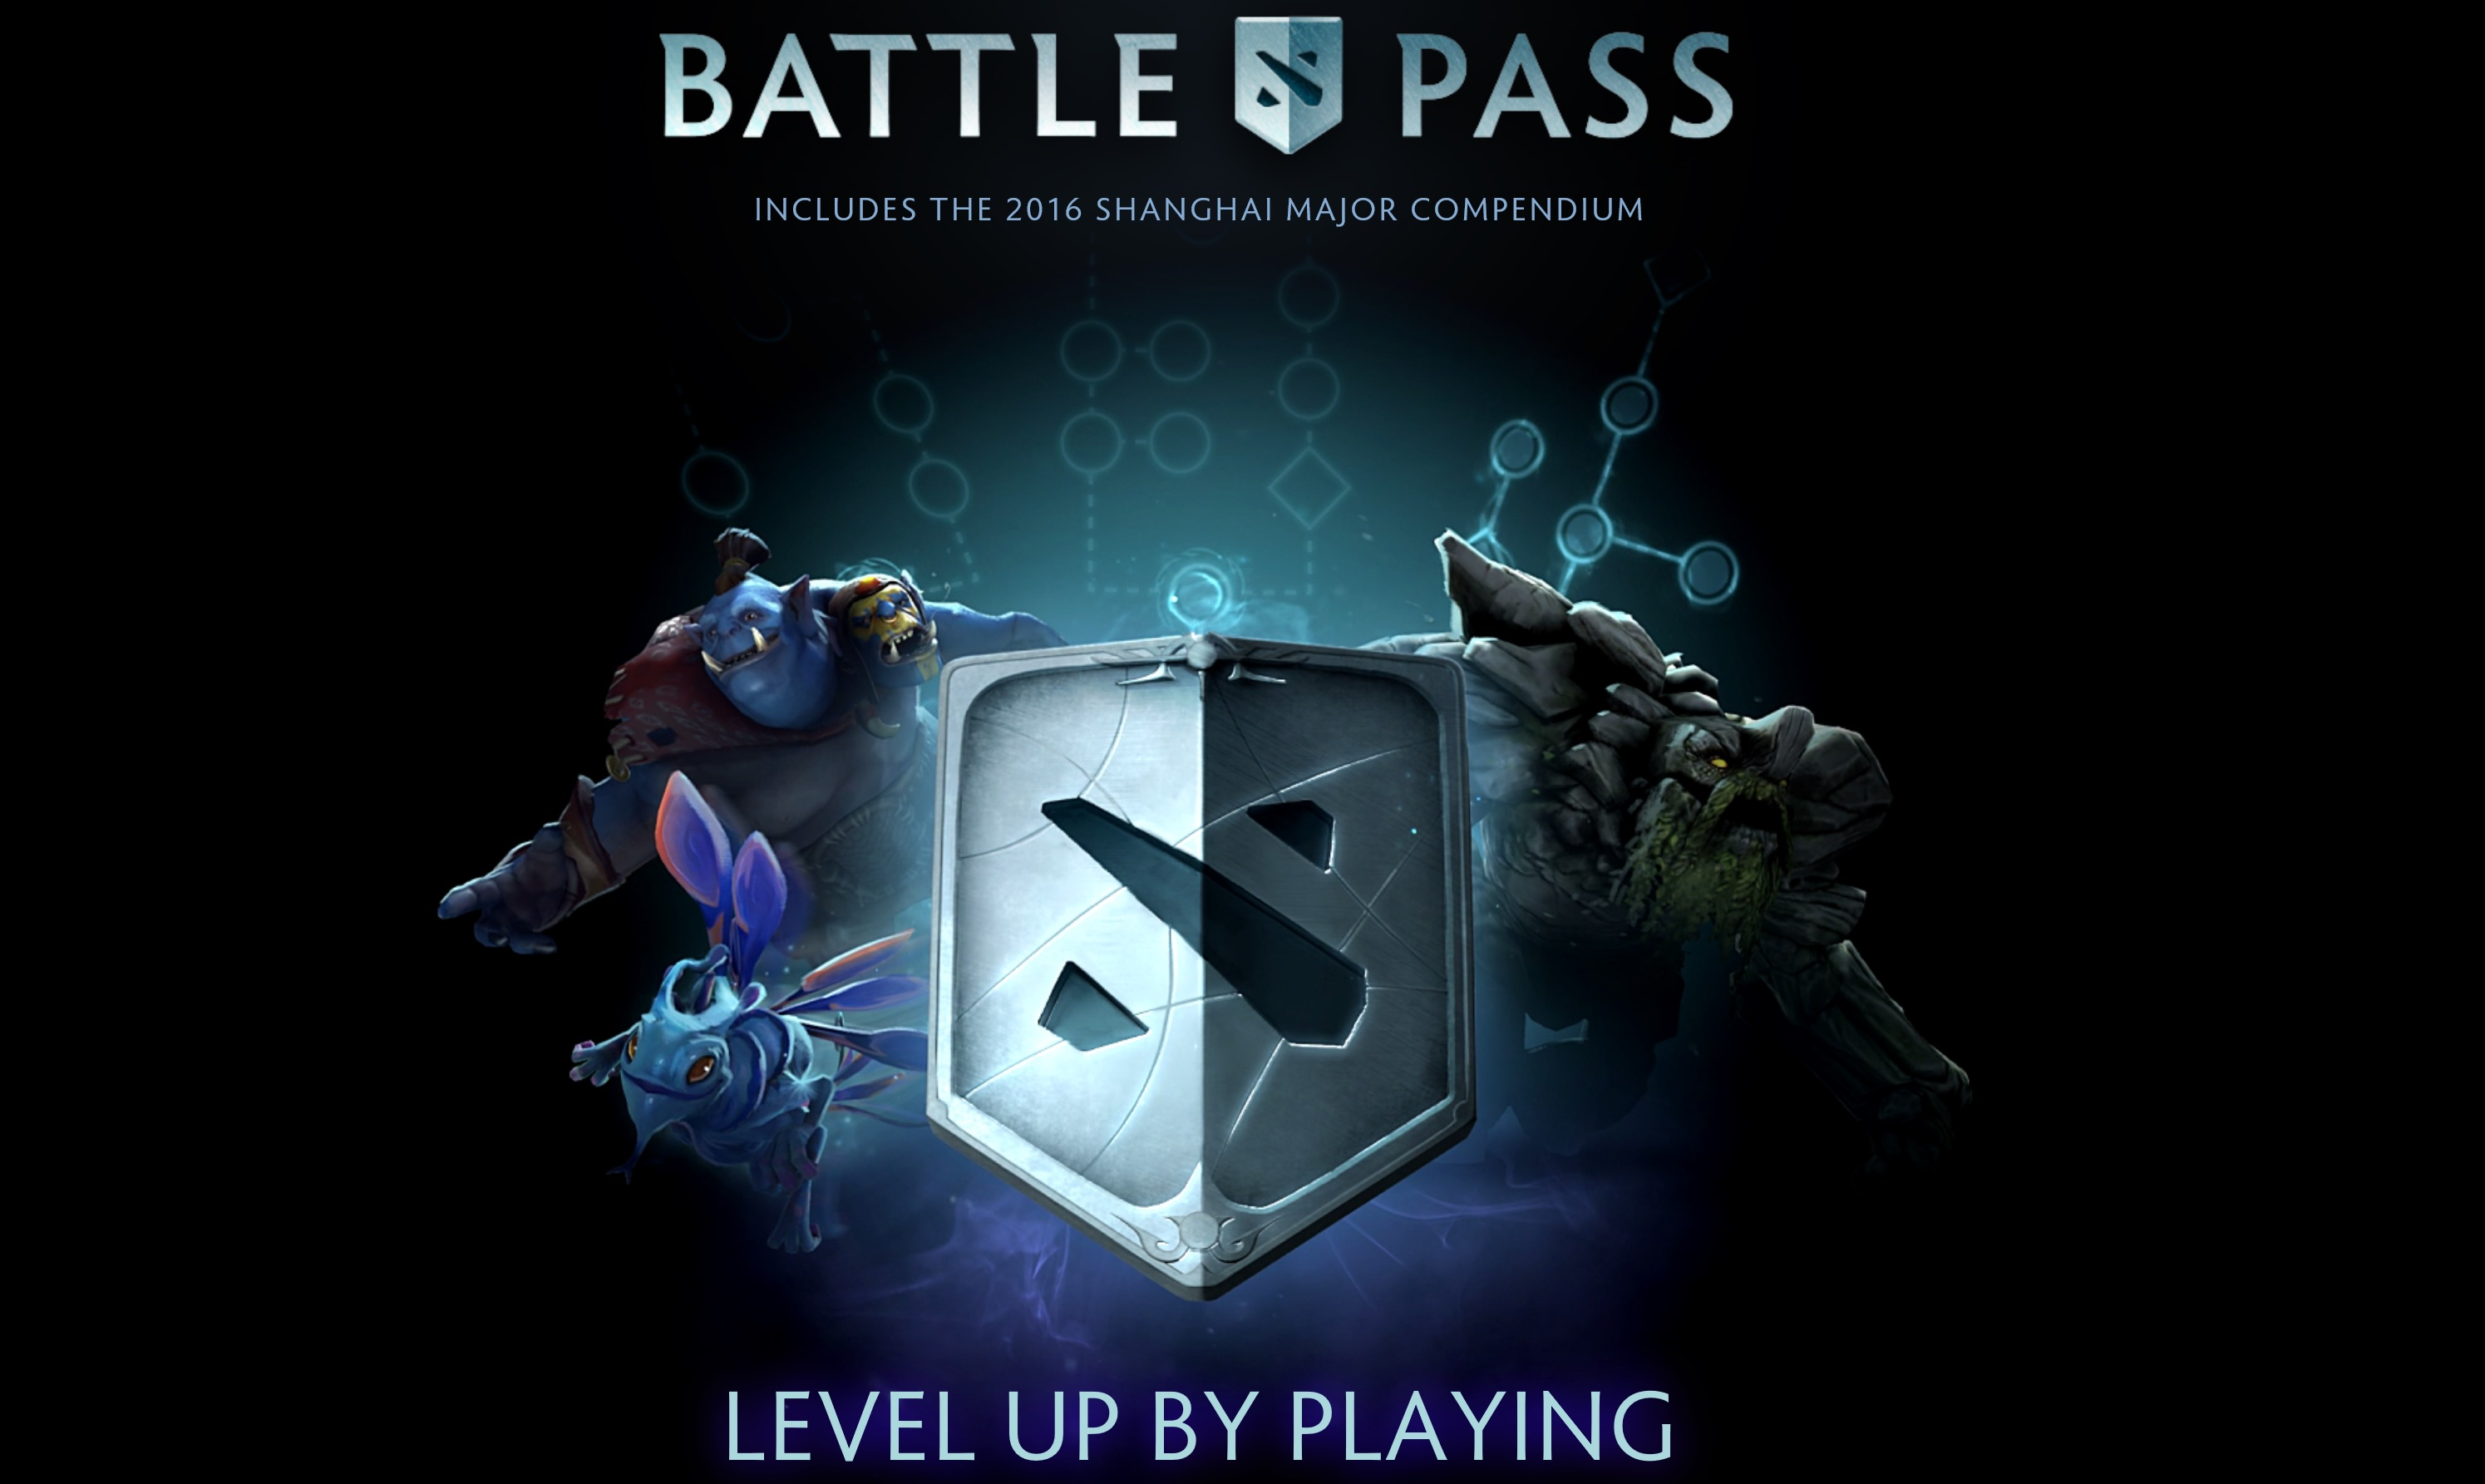 Dota 2 Winter Battle Pass Revealed Comes With Shanghai